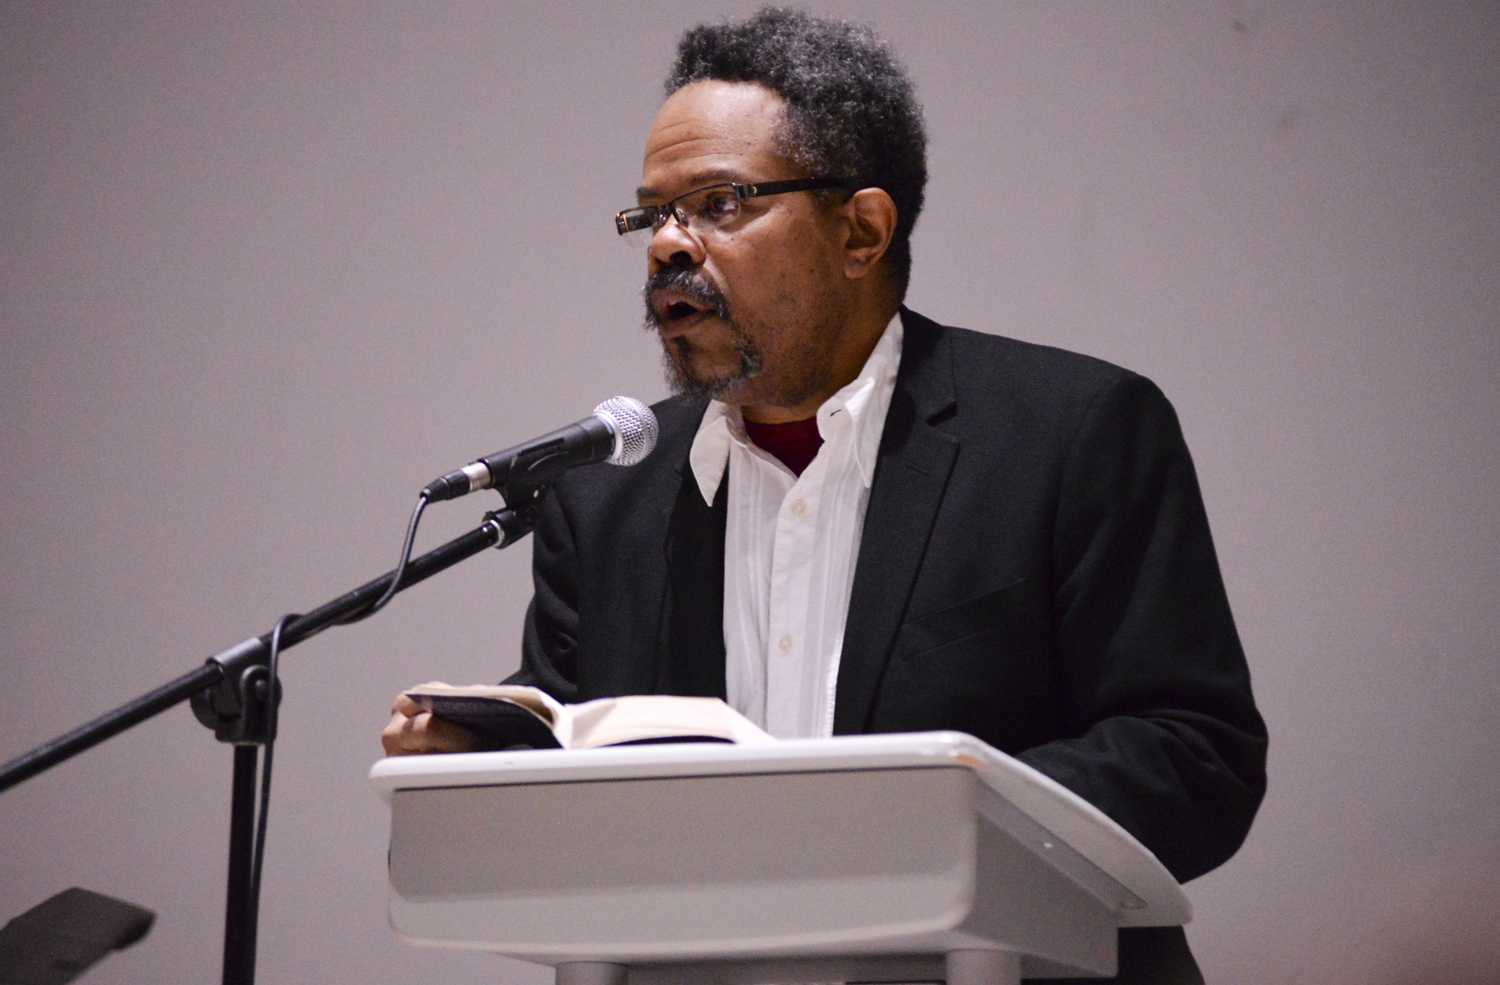 The event was hosted by the Center for African American Poetry and Politics. (Photo by Issi Glatts l Staff Photographer)